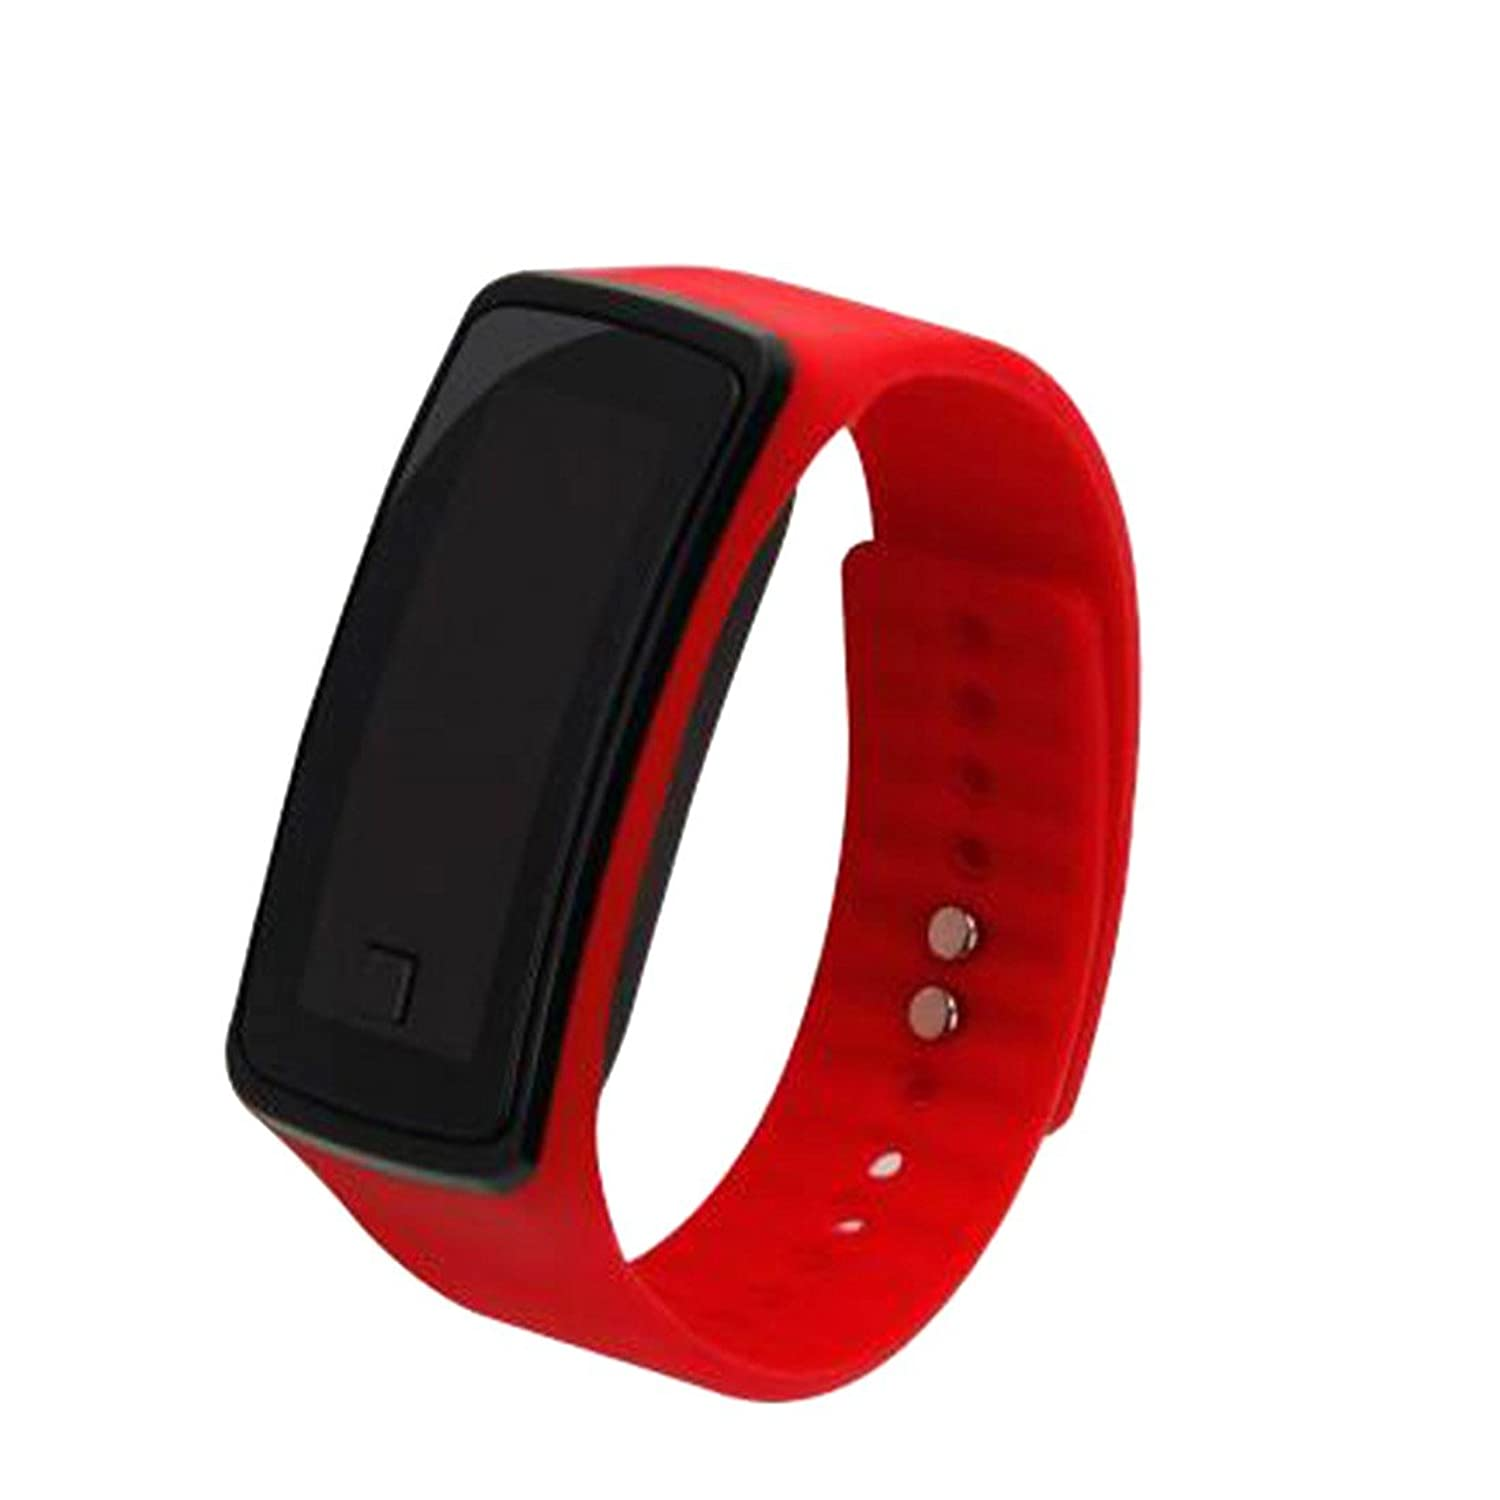 Amazon.com: Silicone Quartz Watch Sports LED Electronic Watch Wristwatch Lovers Watch Unisex Red: Watches